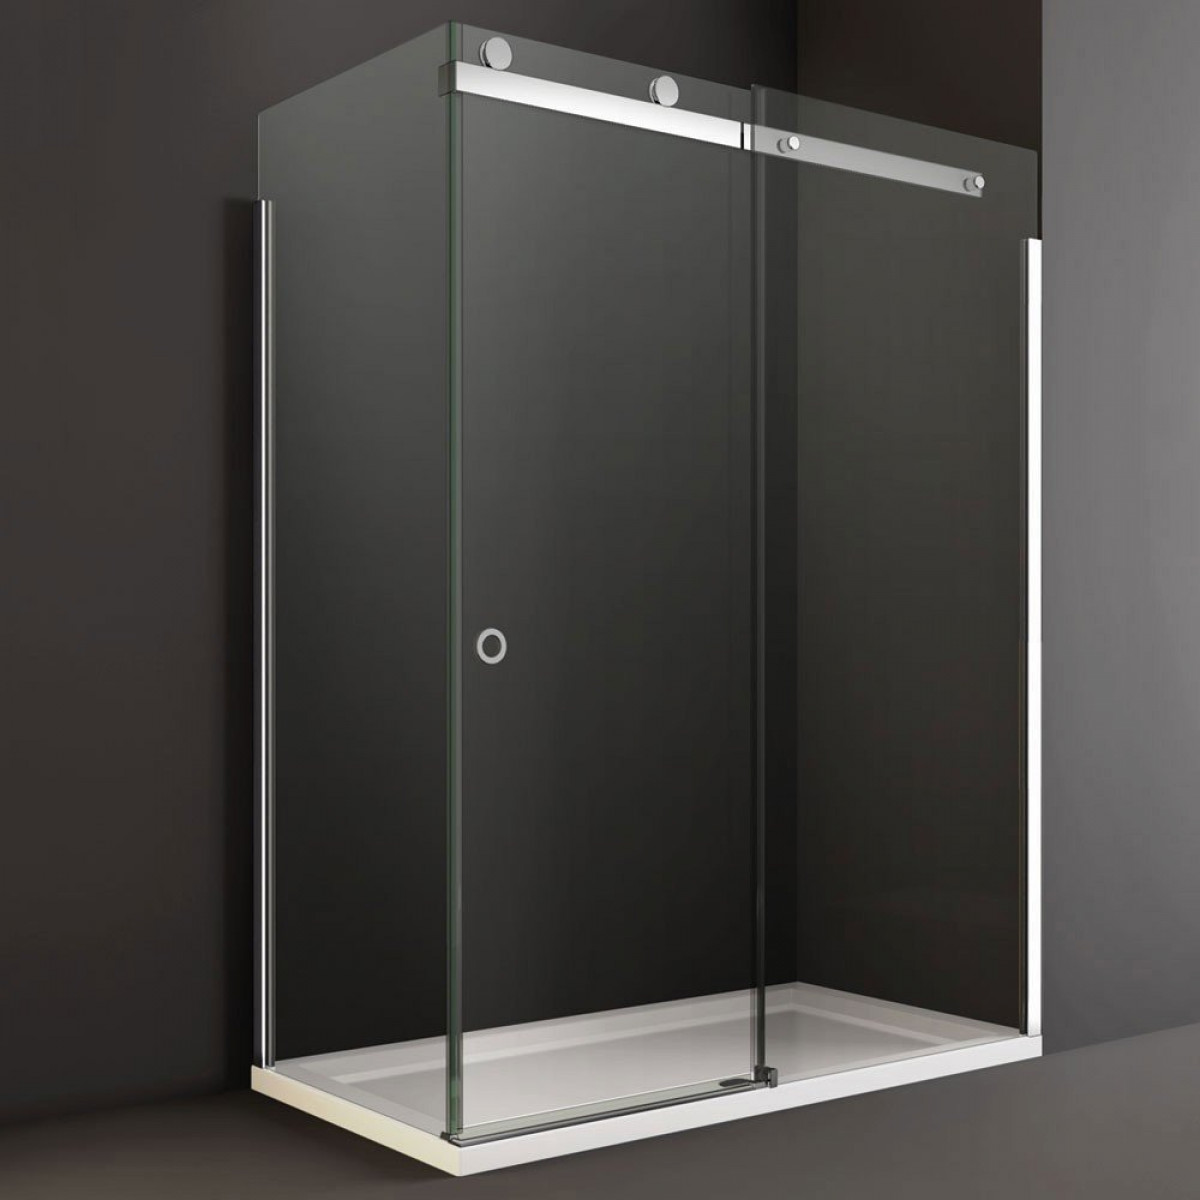 Cleaning Guide How To Clean Your Glass Shower Doors Properly: Merlyn 10 Series 1200mm Sliding Shower Door